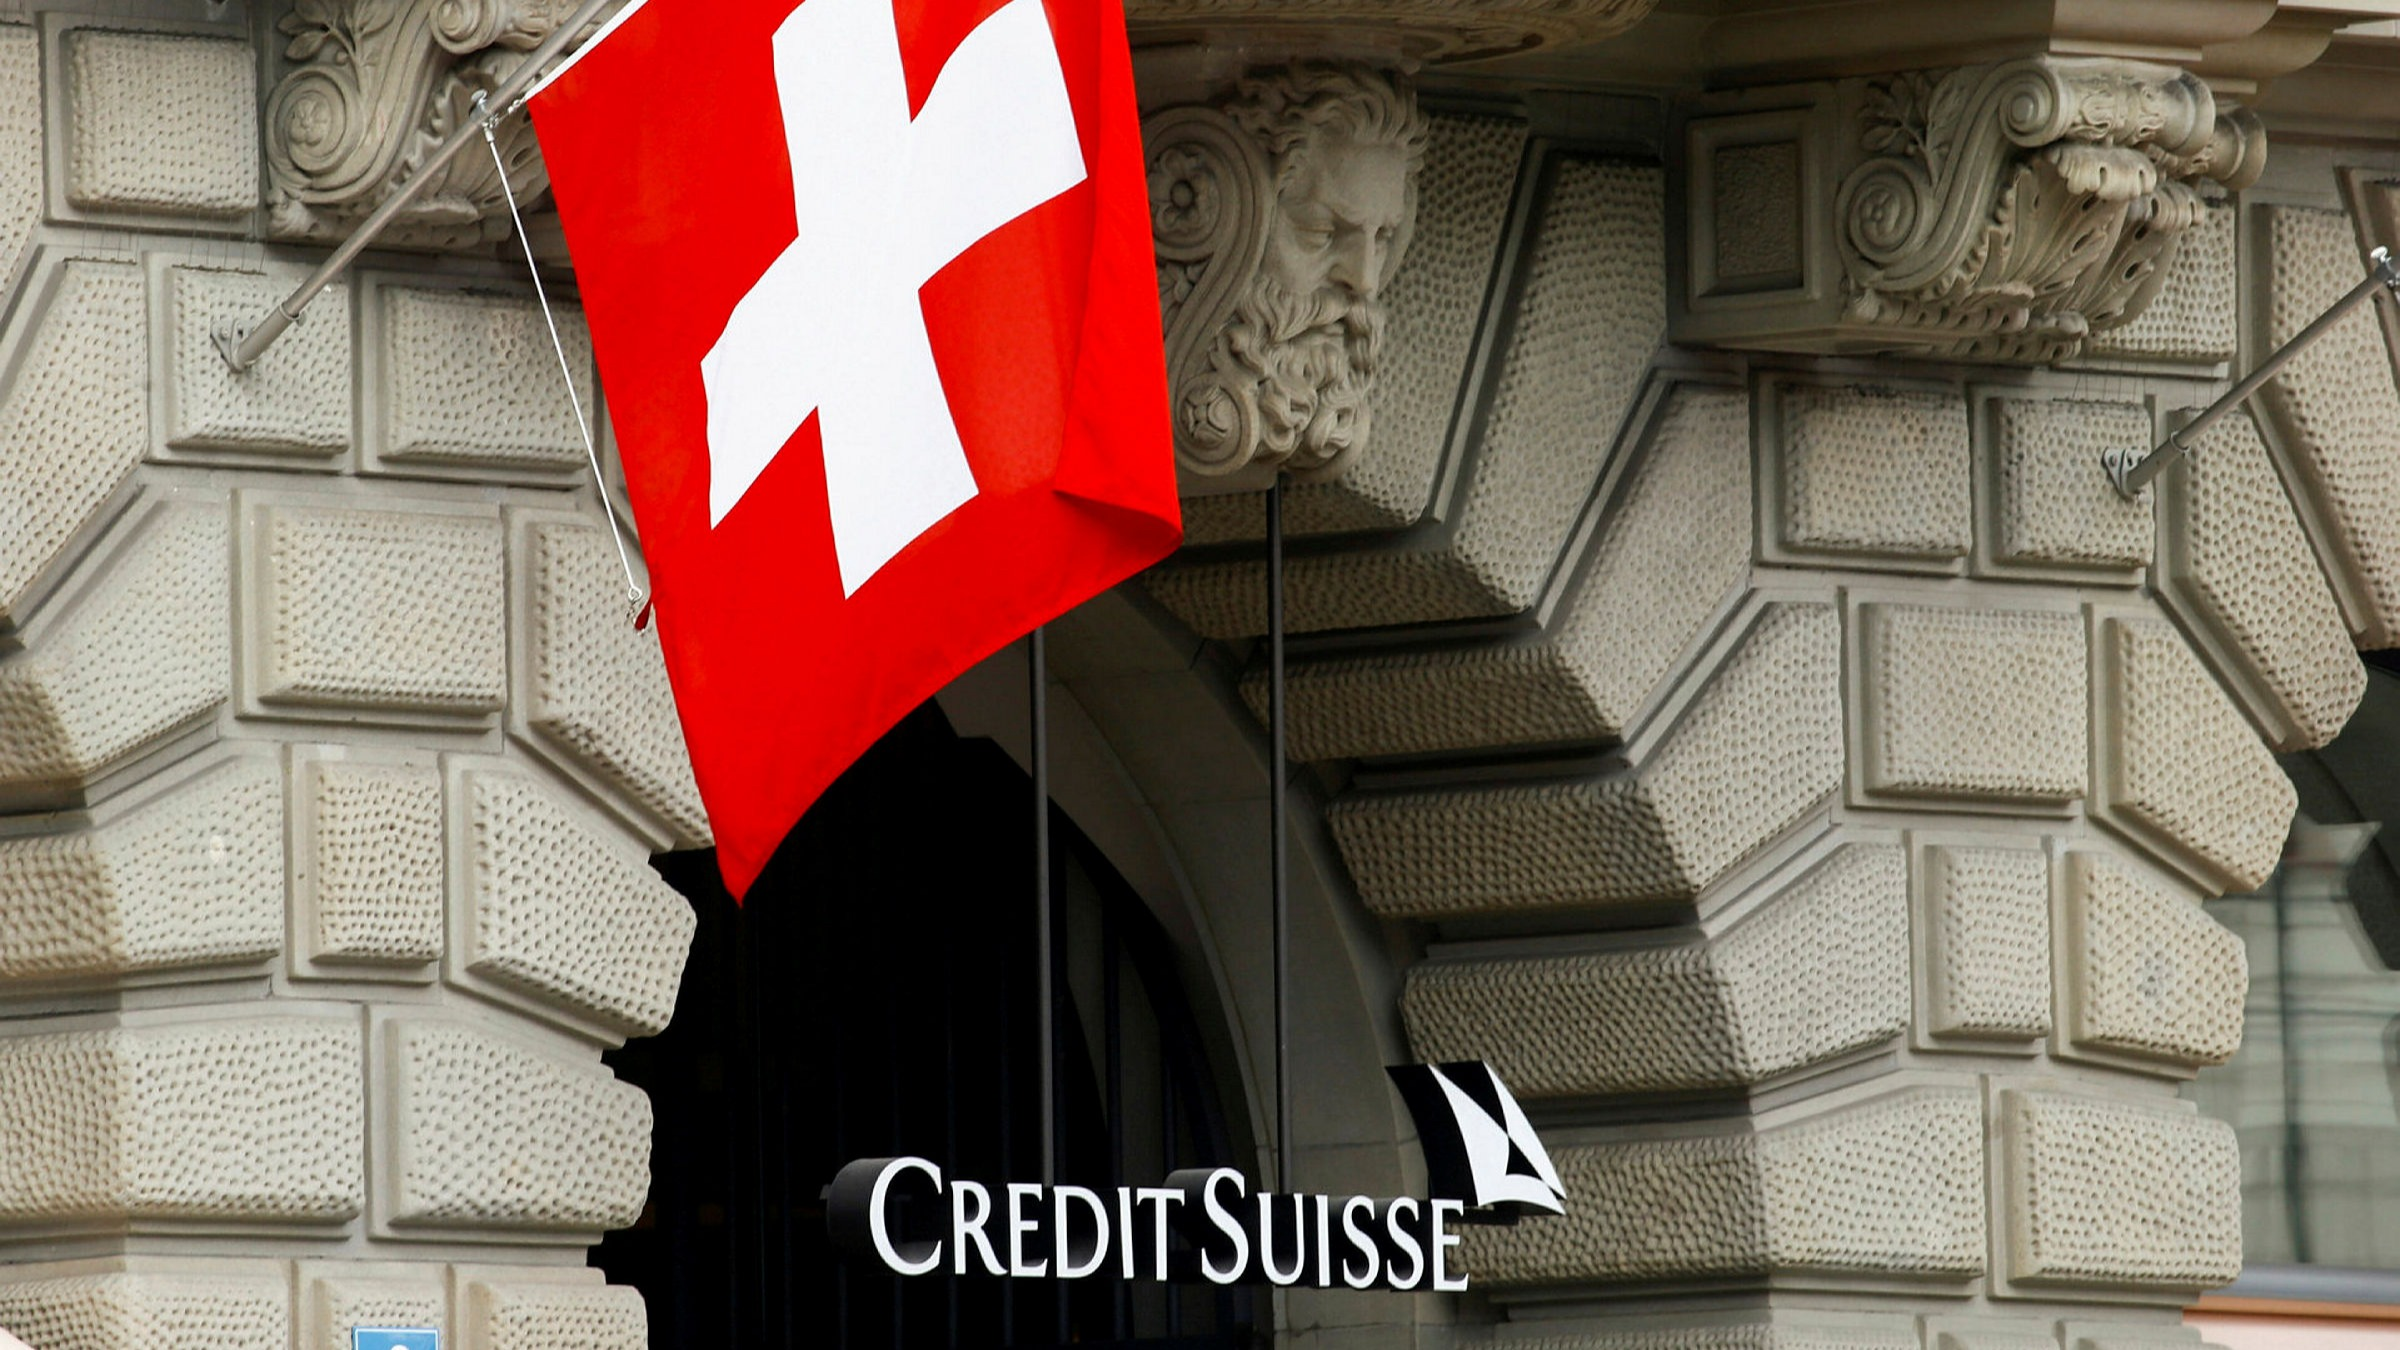 ft.com - Stephen Morris and Owen Walker in London - Credit Suisse under growing pressure to compensate clients over Greensill